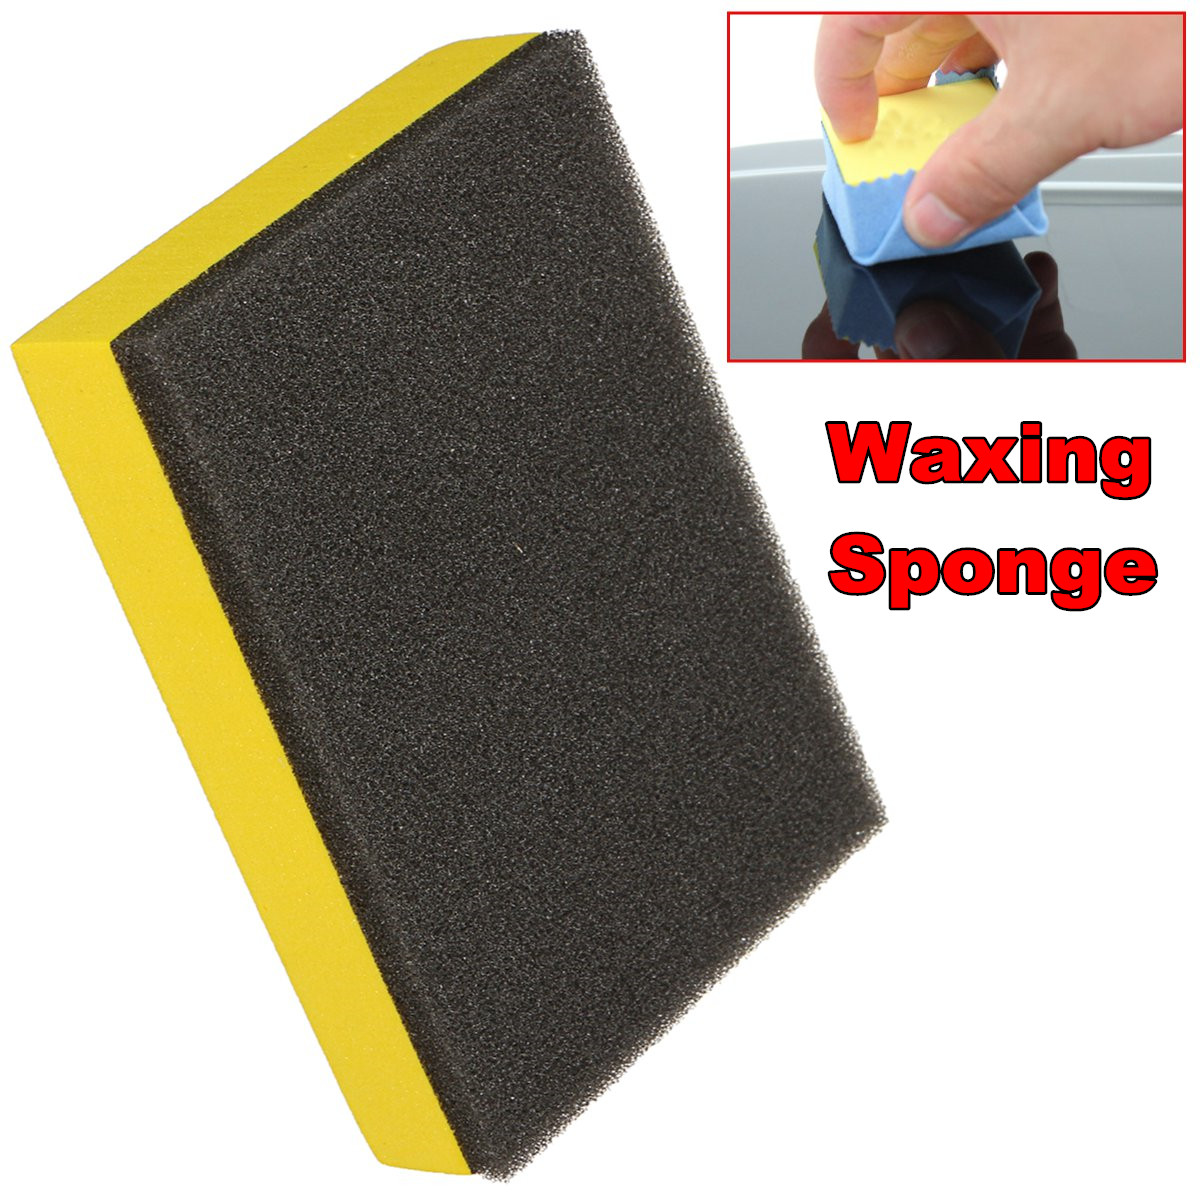 Anti Scratch Car Polish Waxing Sponge Liquid Ceramic Coat Auto Glasscoat Waxing Pad